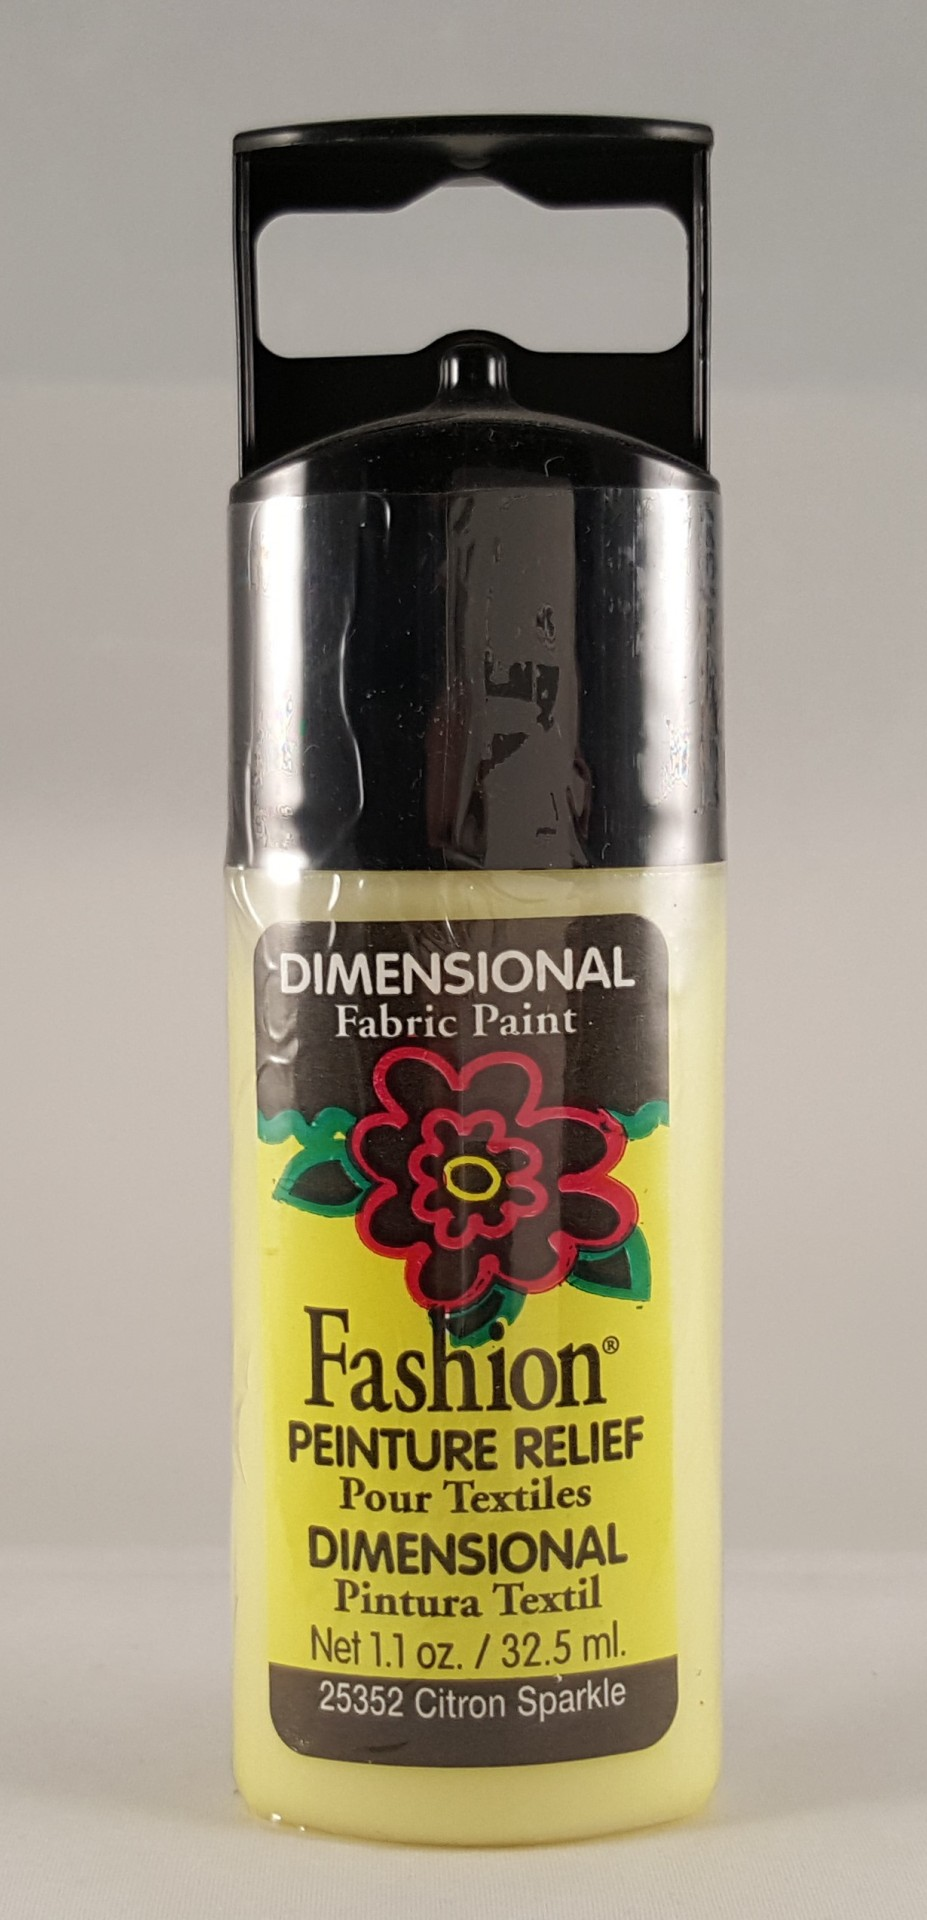 Tinta Dimensional para Tecido Fashion citron sparkle